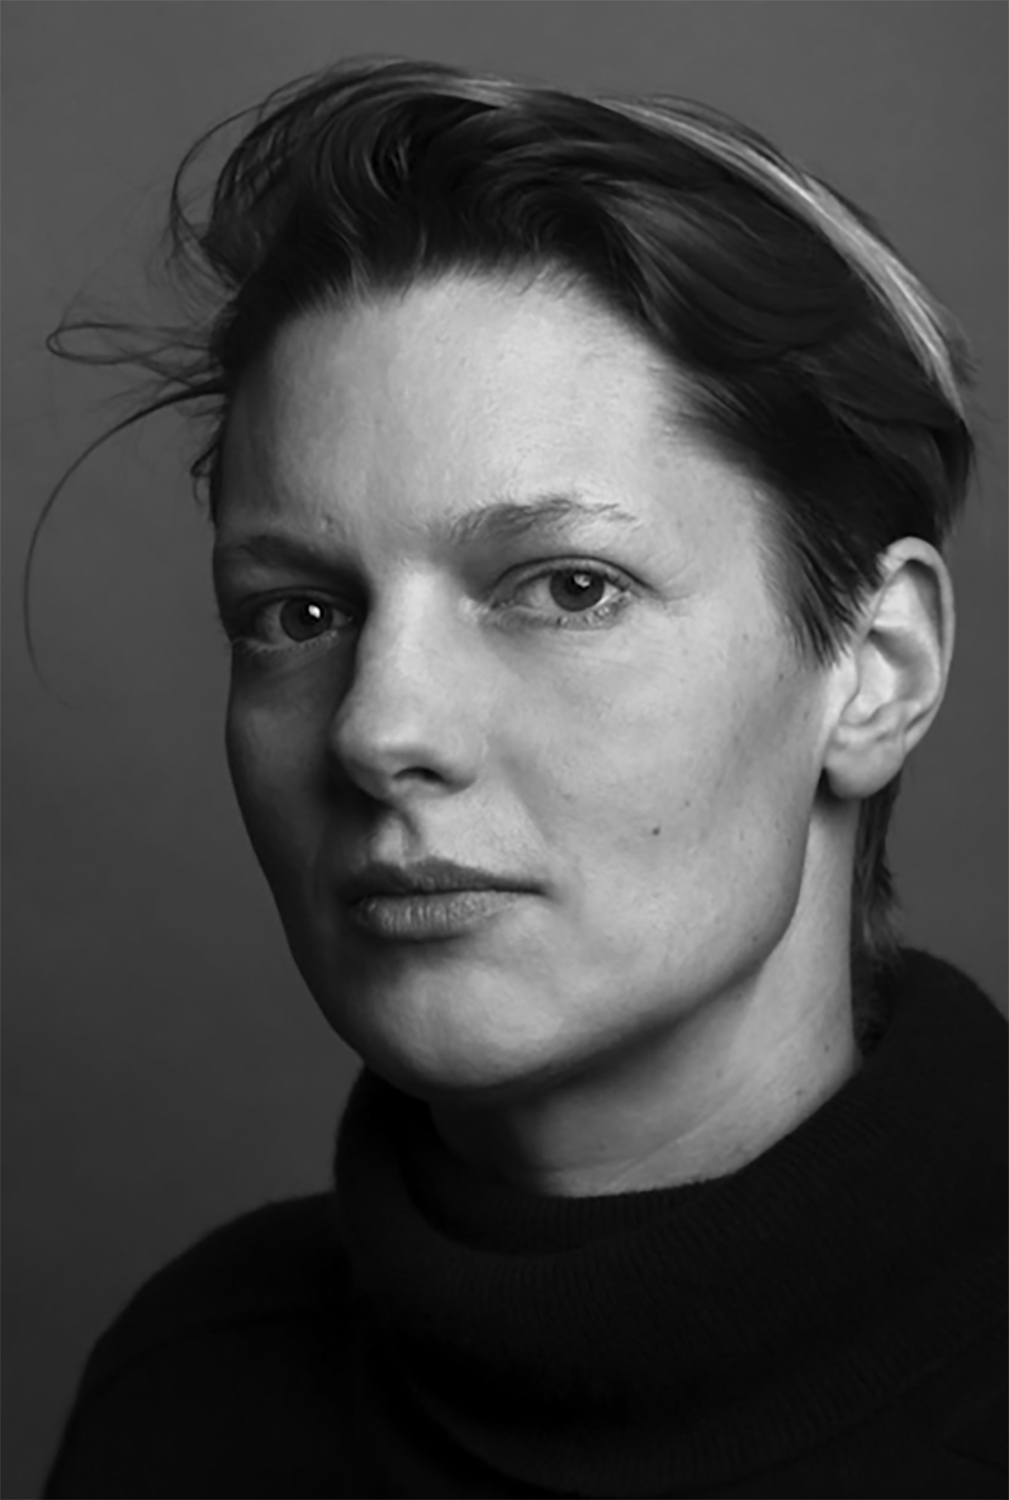 Dorothea Tuch – Photo Trainer at Berlin School of Photography